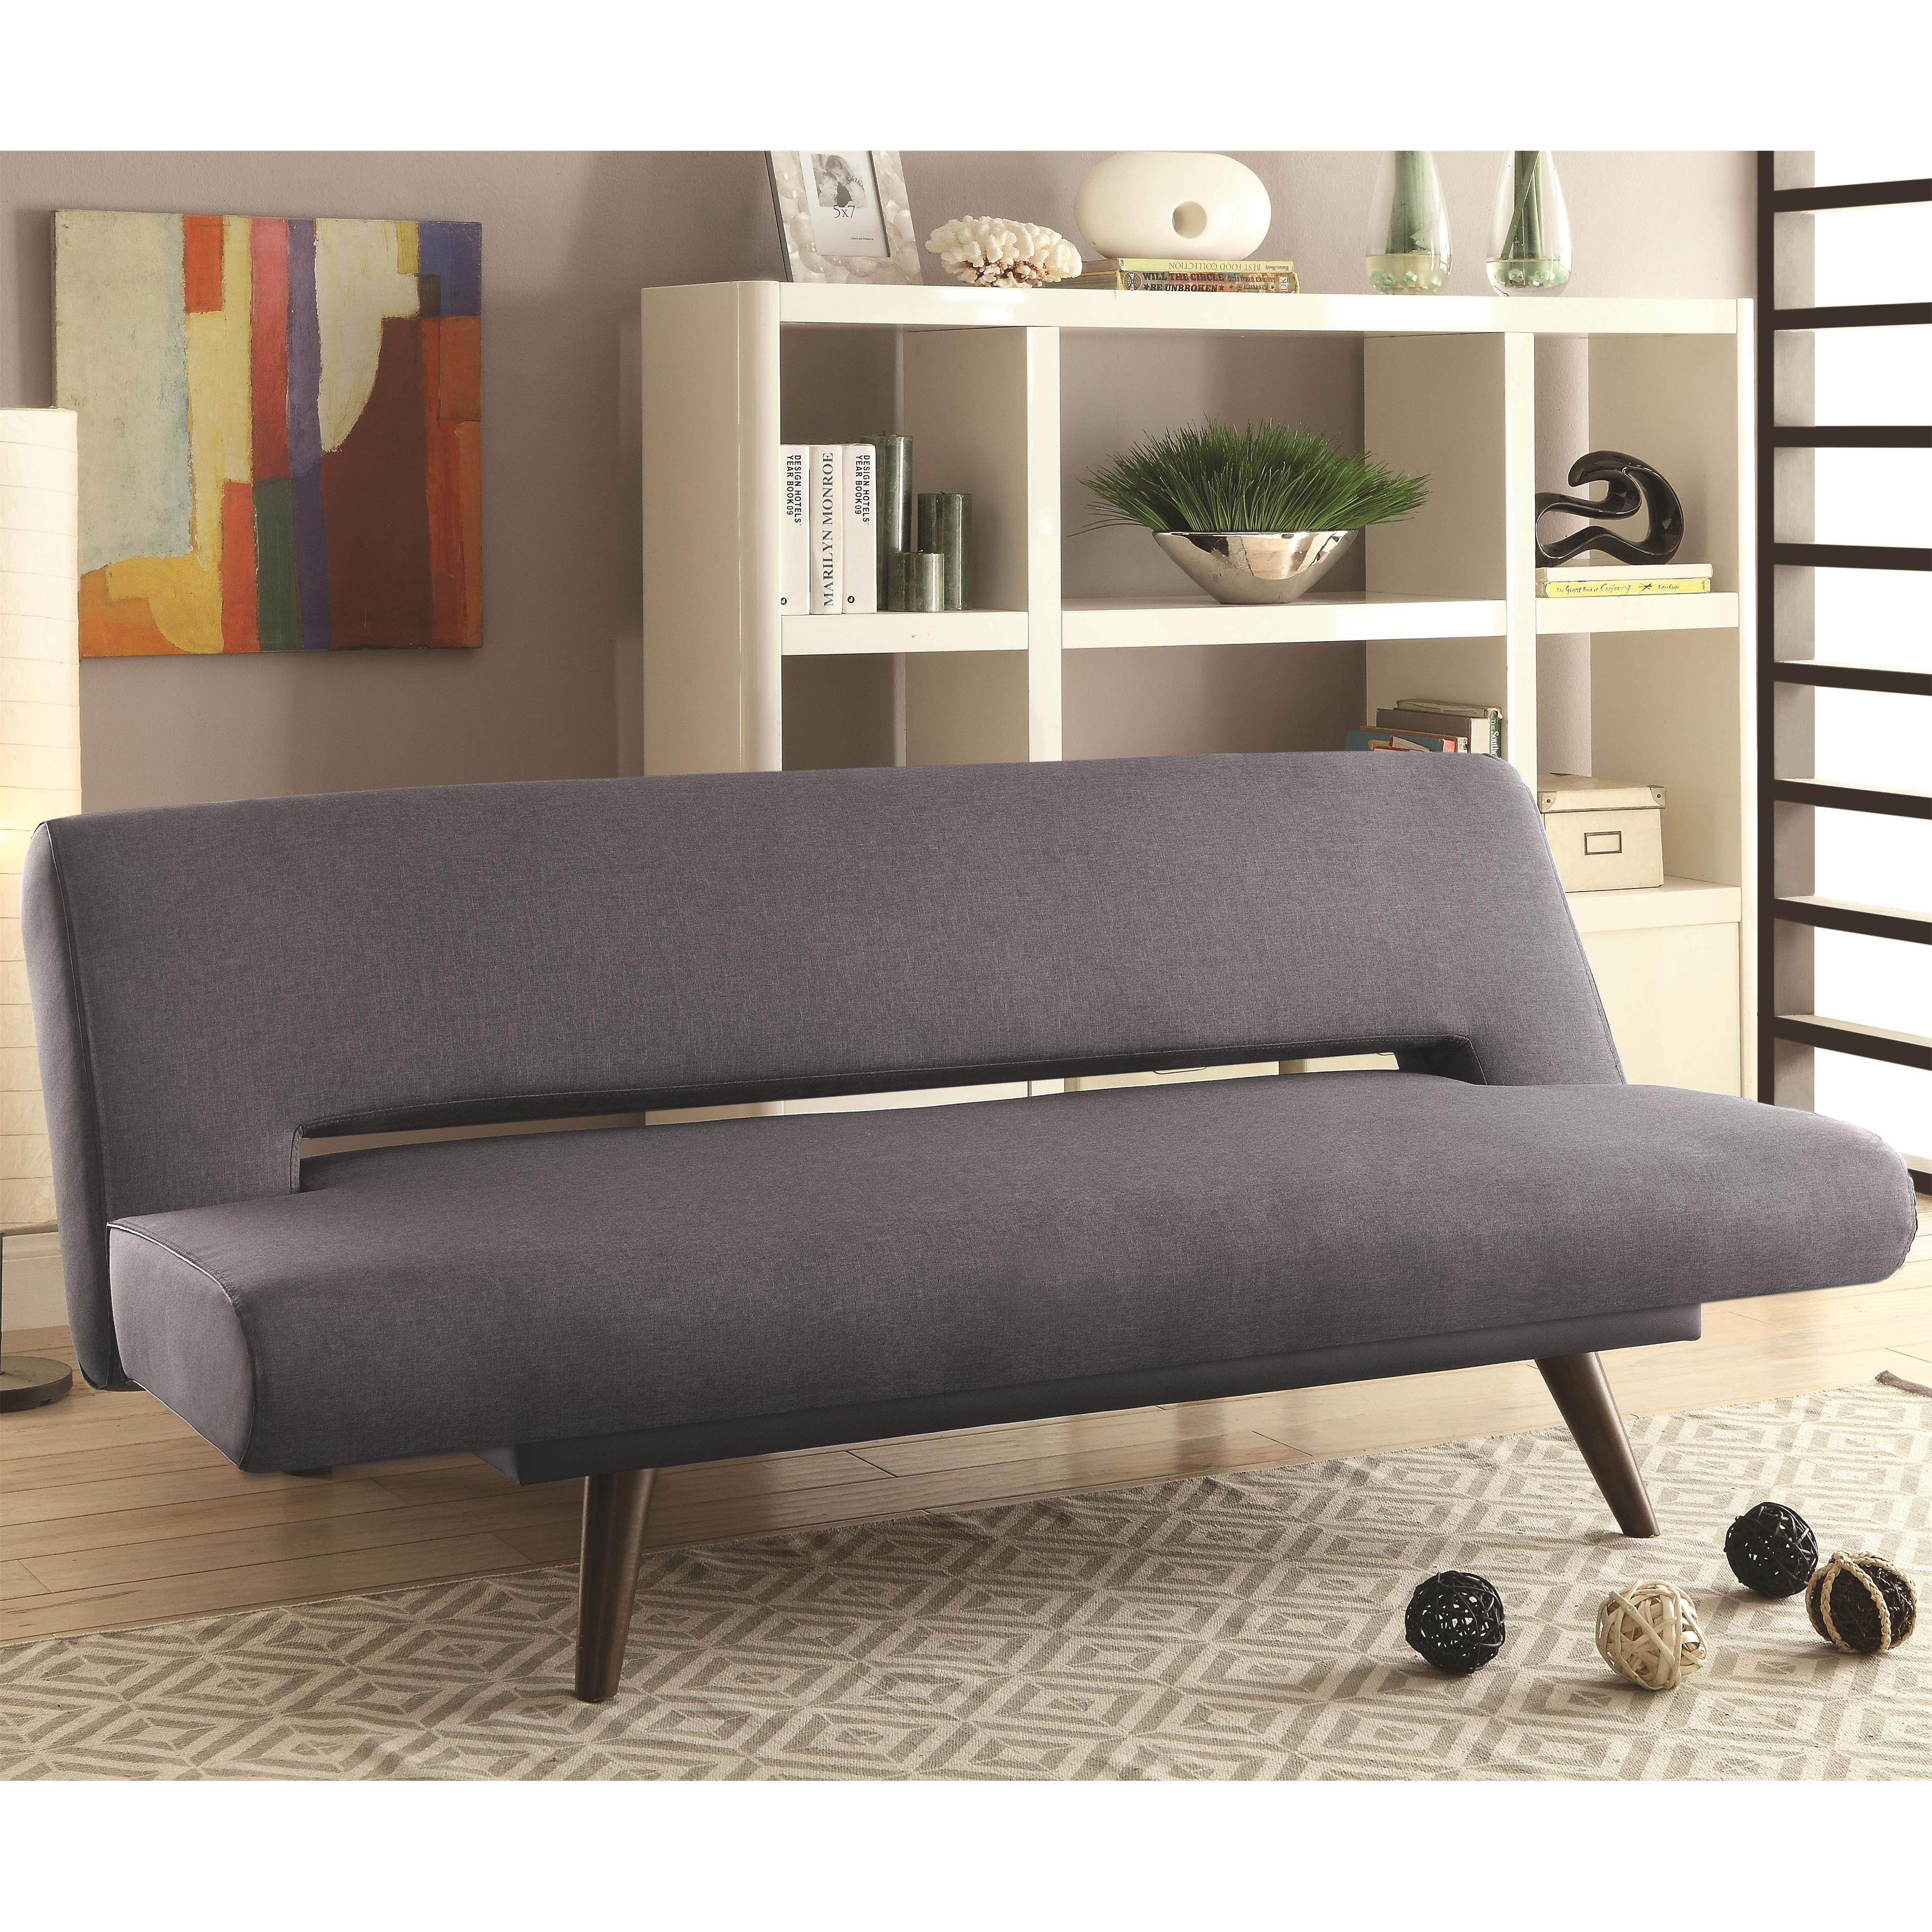 Coaster Sofa Beds and Futons 550139 Mid Century Modern Adjustable Sofa Bed  Dunk  Bright